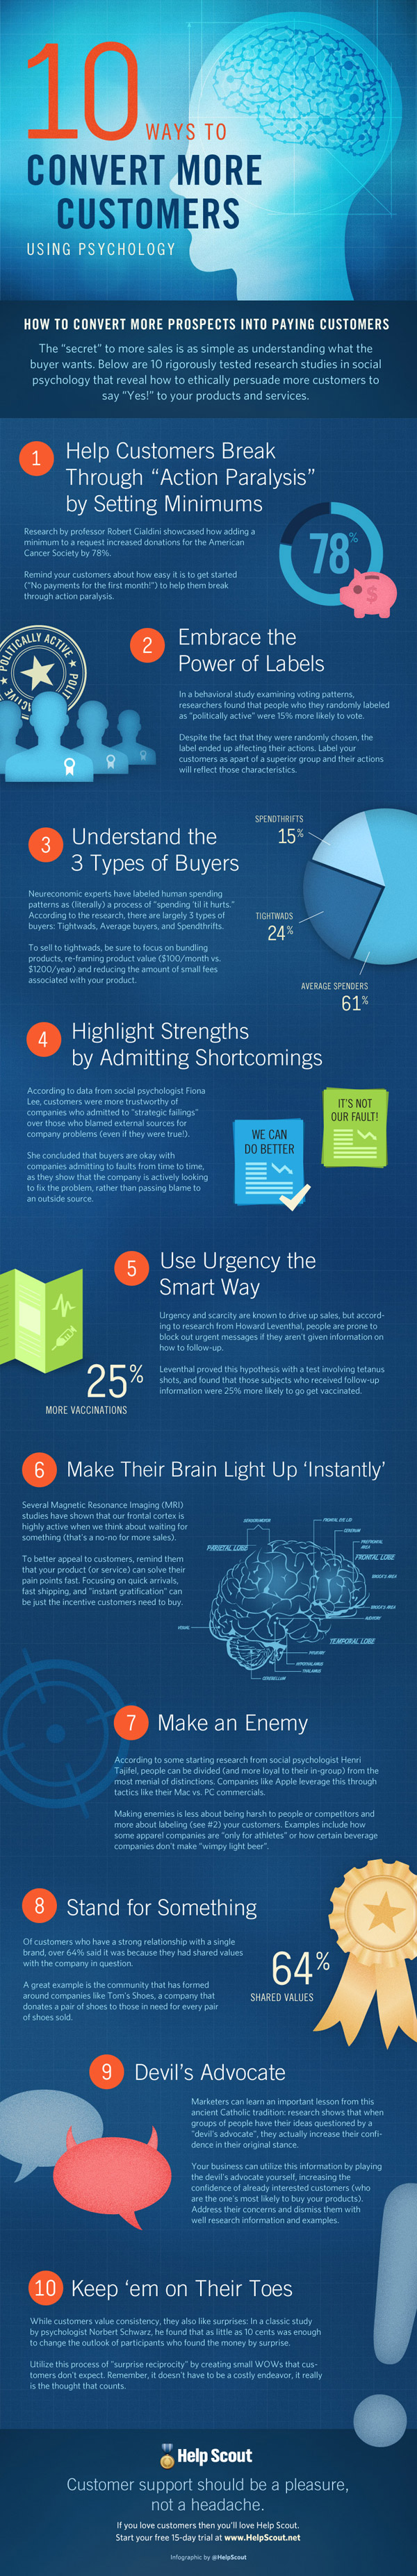 Psychology of Converting Customers resized 600